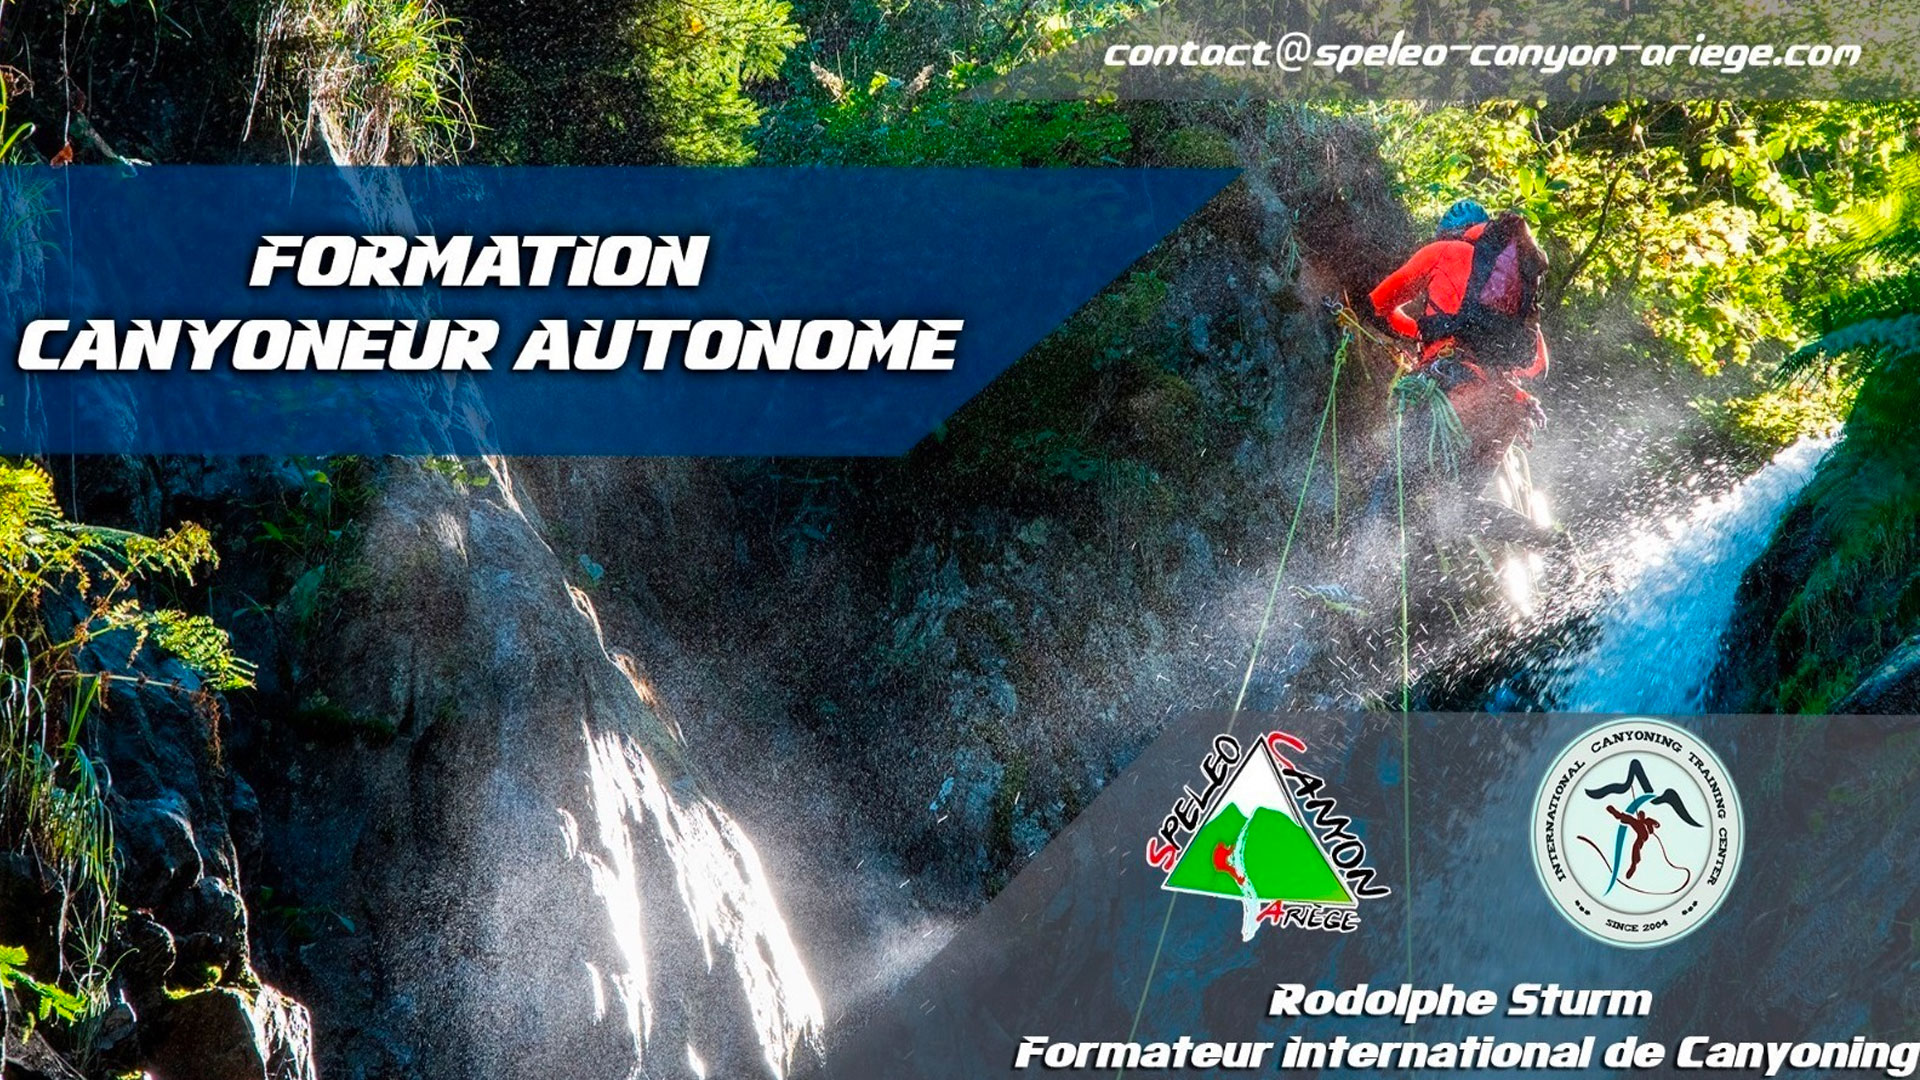 Banner for advertising the canyoning course